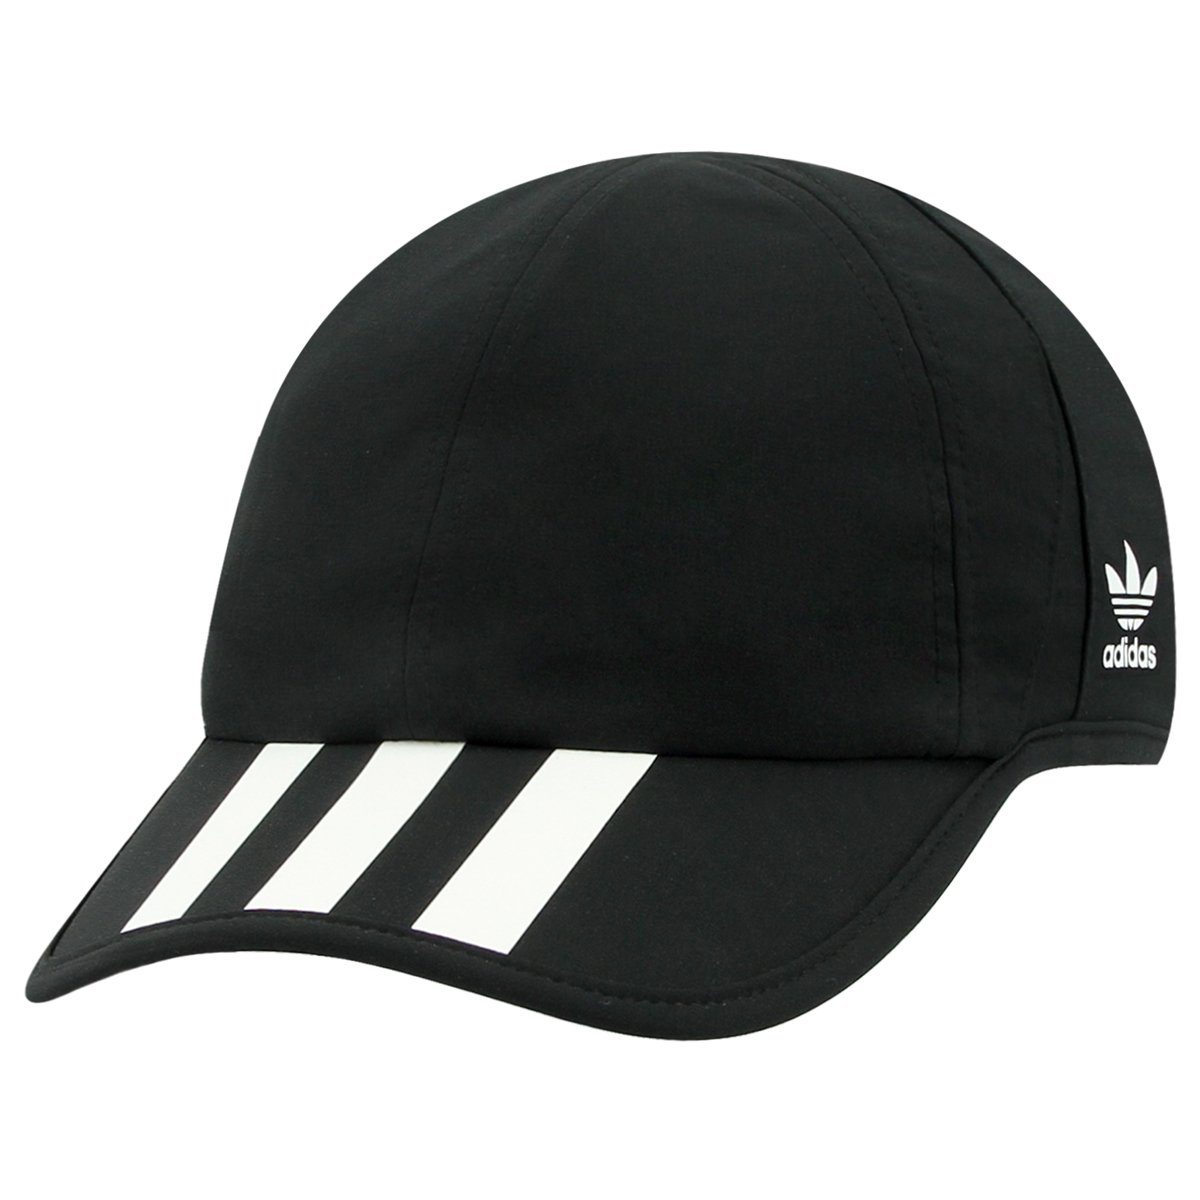 0a85750a5d2 adidas Men s Originals 3-Stripes Trainer Cap